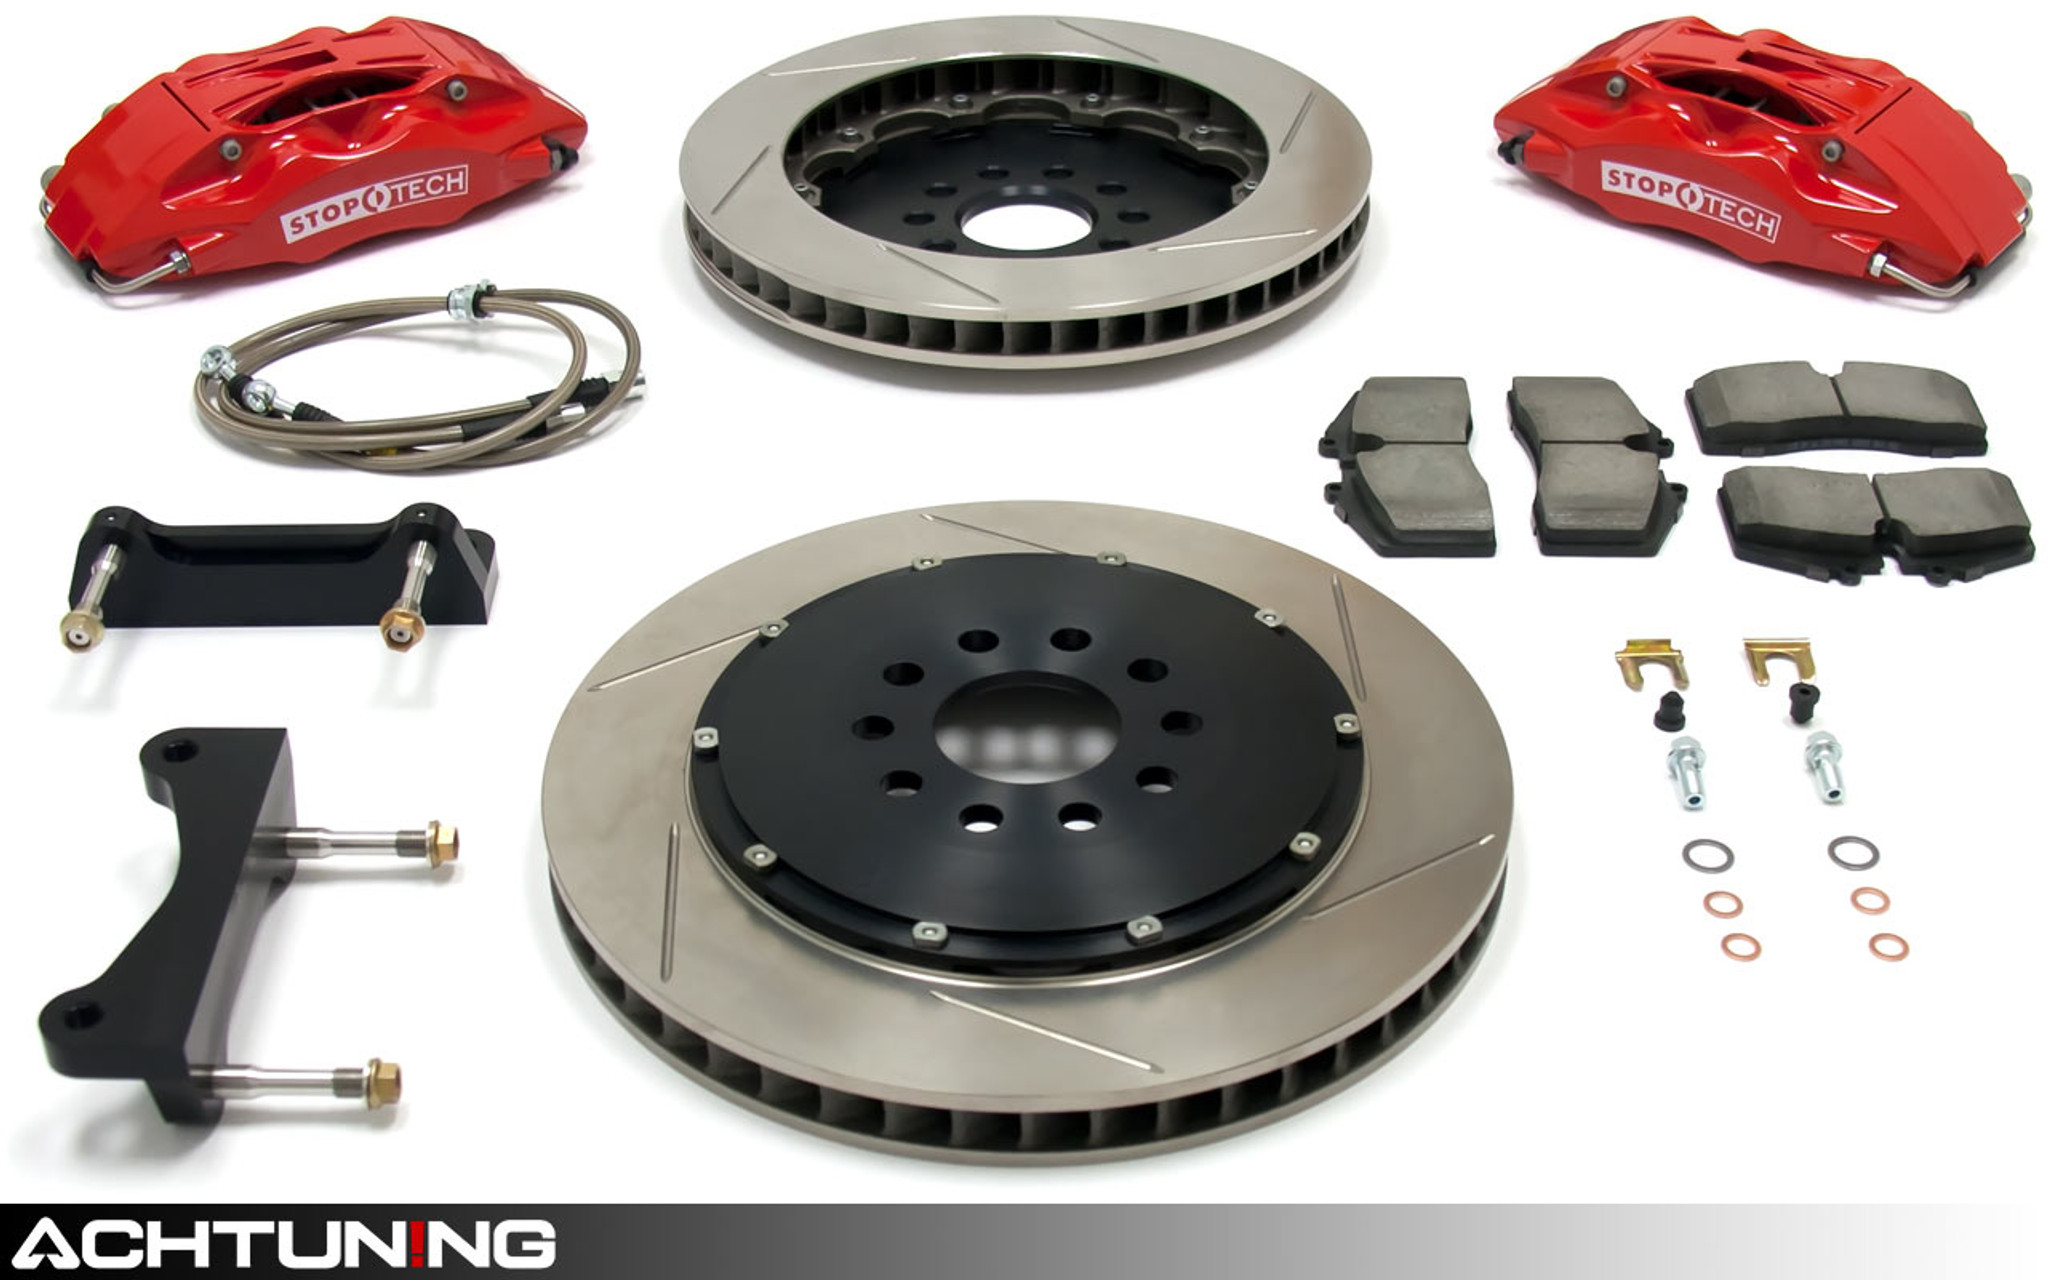 Fits: 2011 11 2012 12 2013 13 Honda Odyssey Max Brakes Front /& Rear Elite Brake Kit E-Coated OE Rotors + Ceramic Pads KT104003